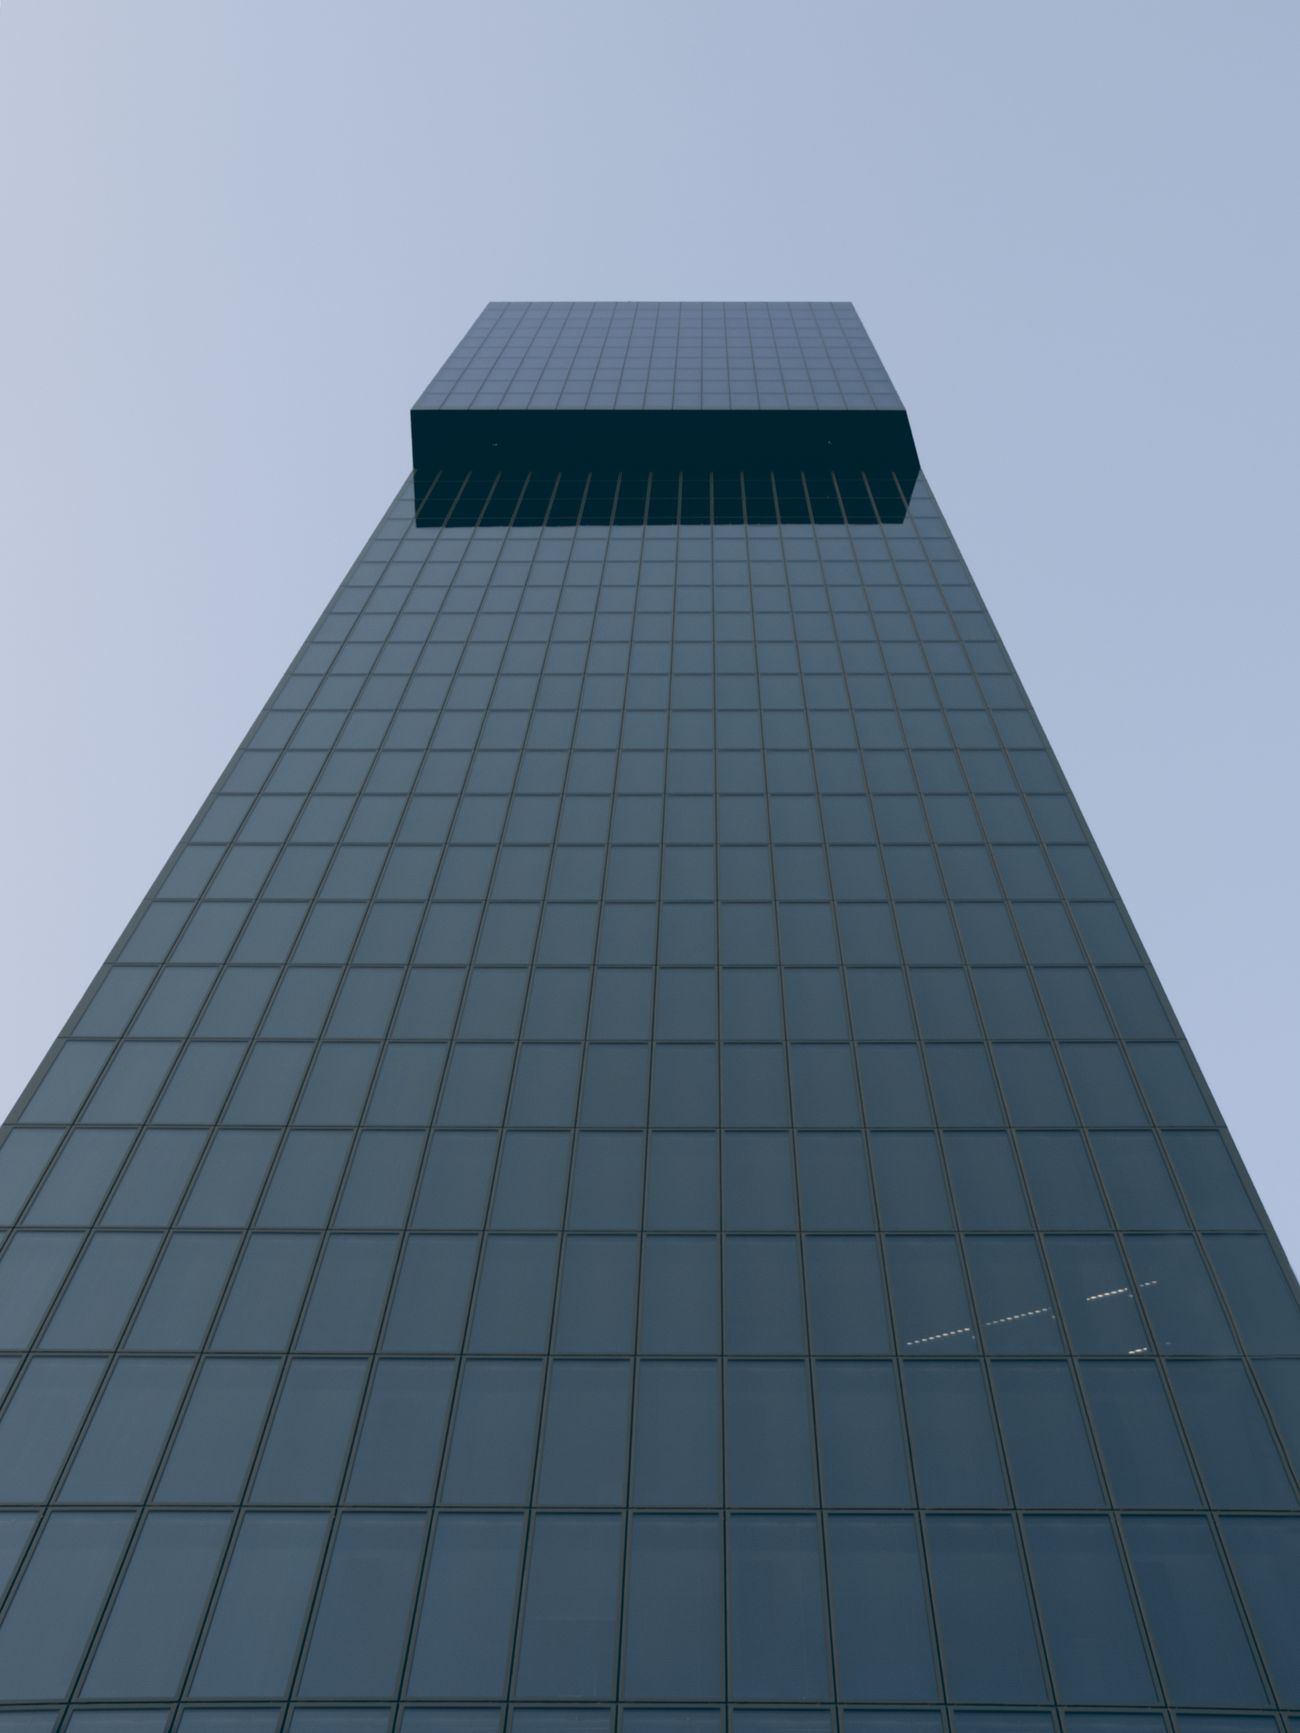 Architecture Building Exterior Built Structure City Clear Sky Low Angle View Modern Pattern Prime Tower Skyscraper